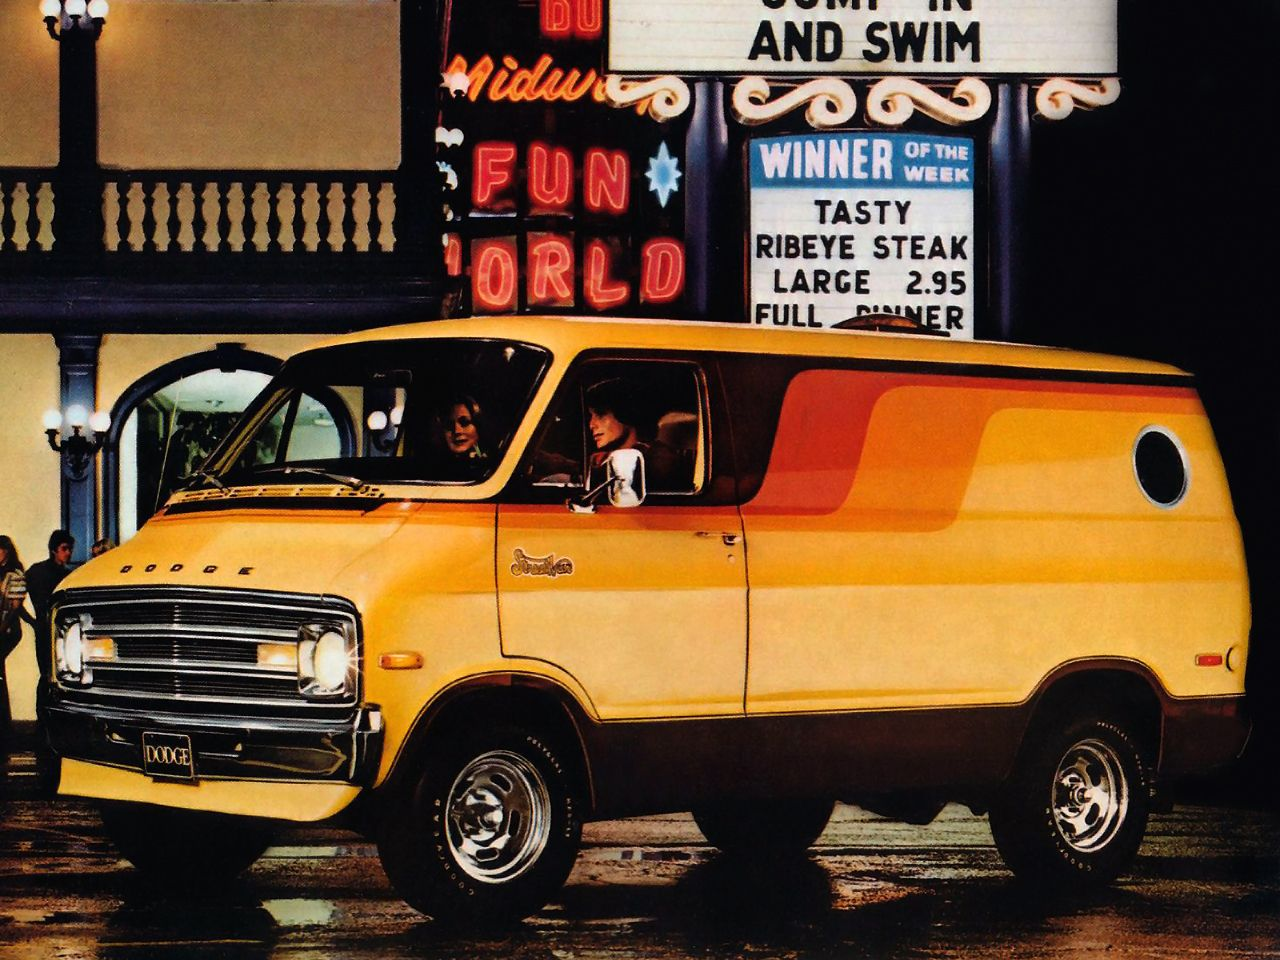 classic dodge van ad manassas lindsay chrysler dodge jeep ram classic dodge ads. Black Bedroom Furniture Sets. Home Design Ideas